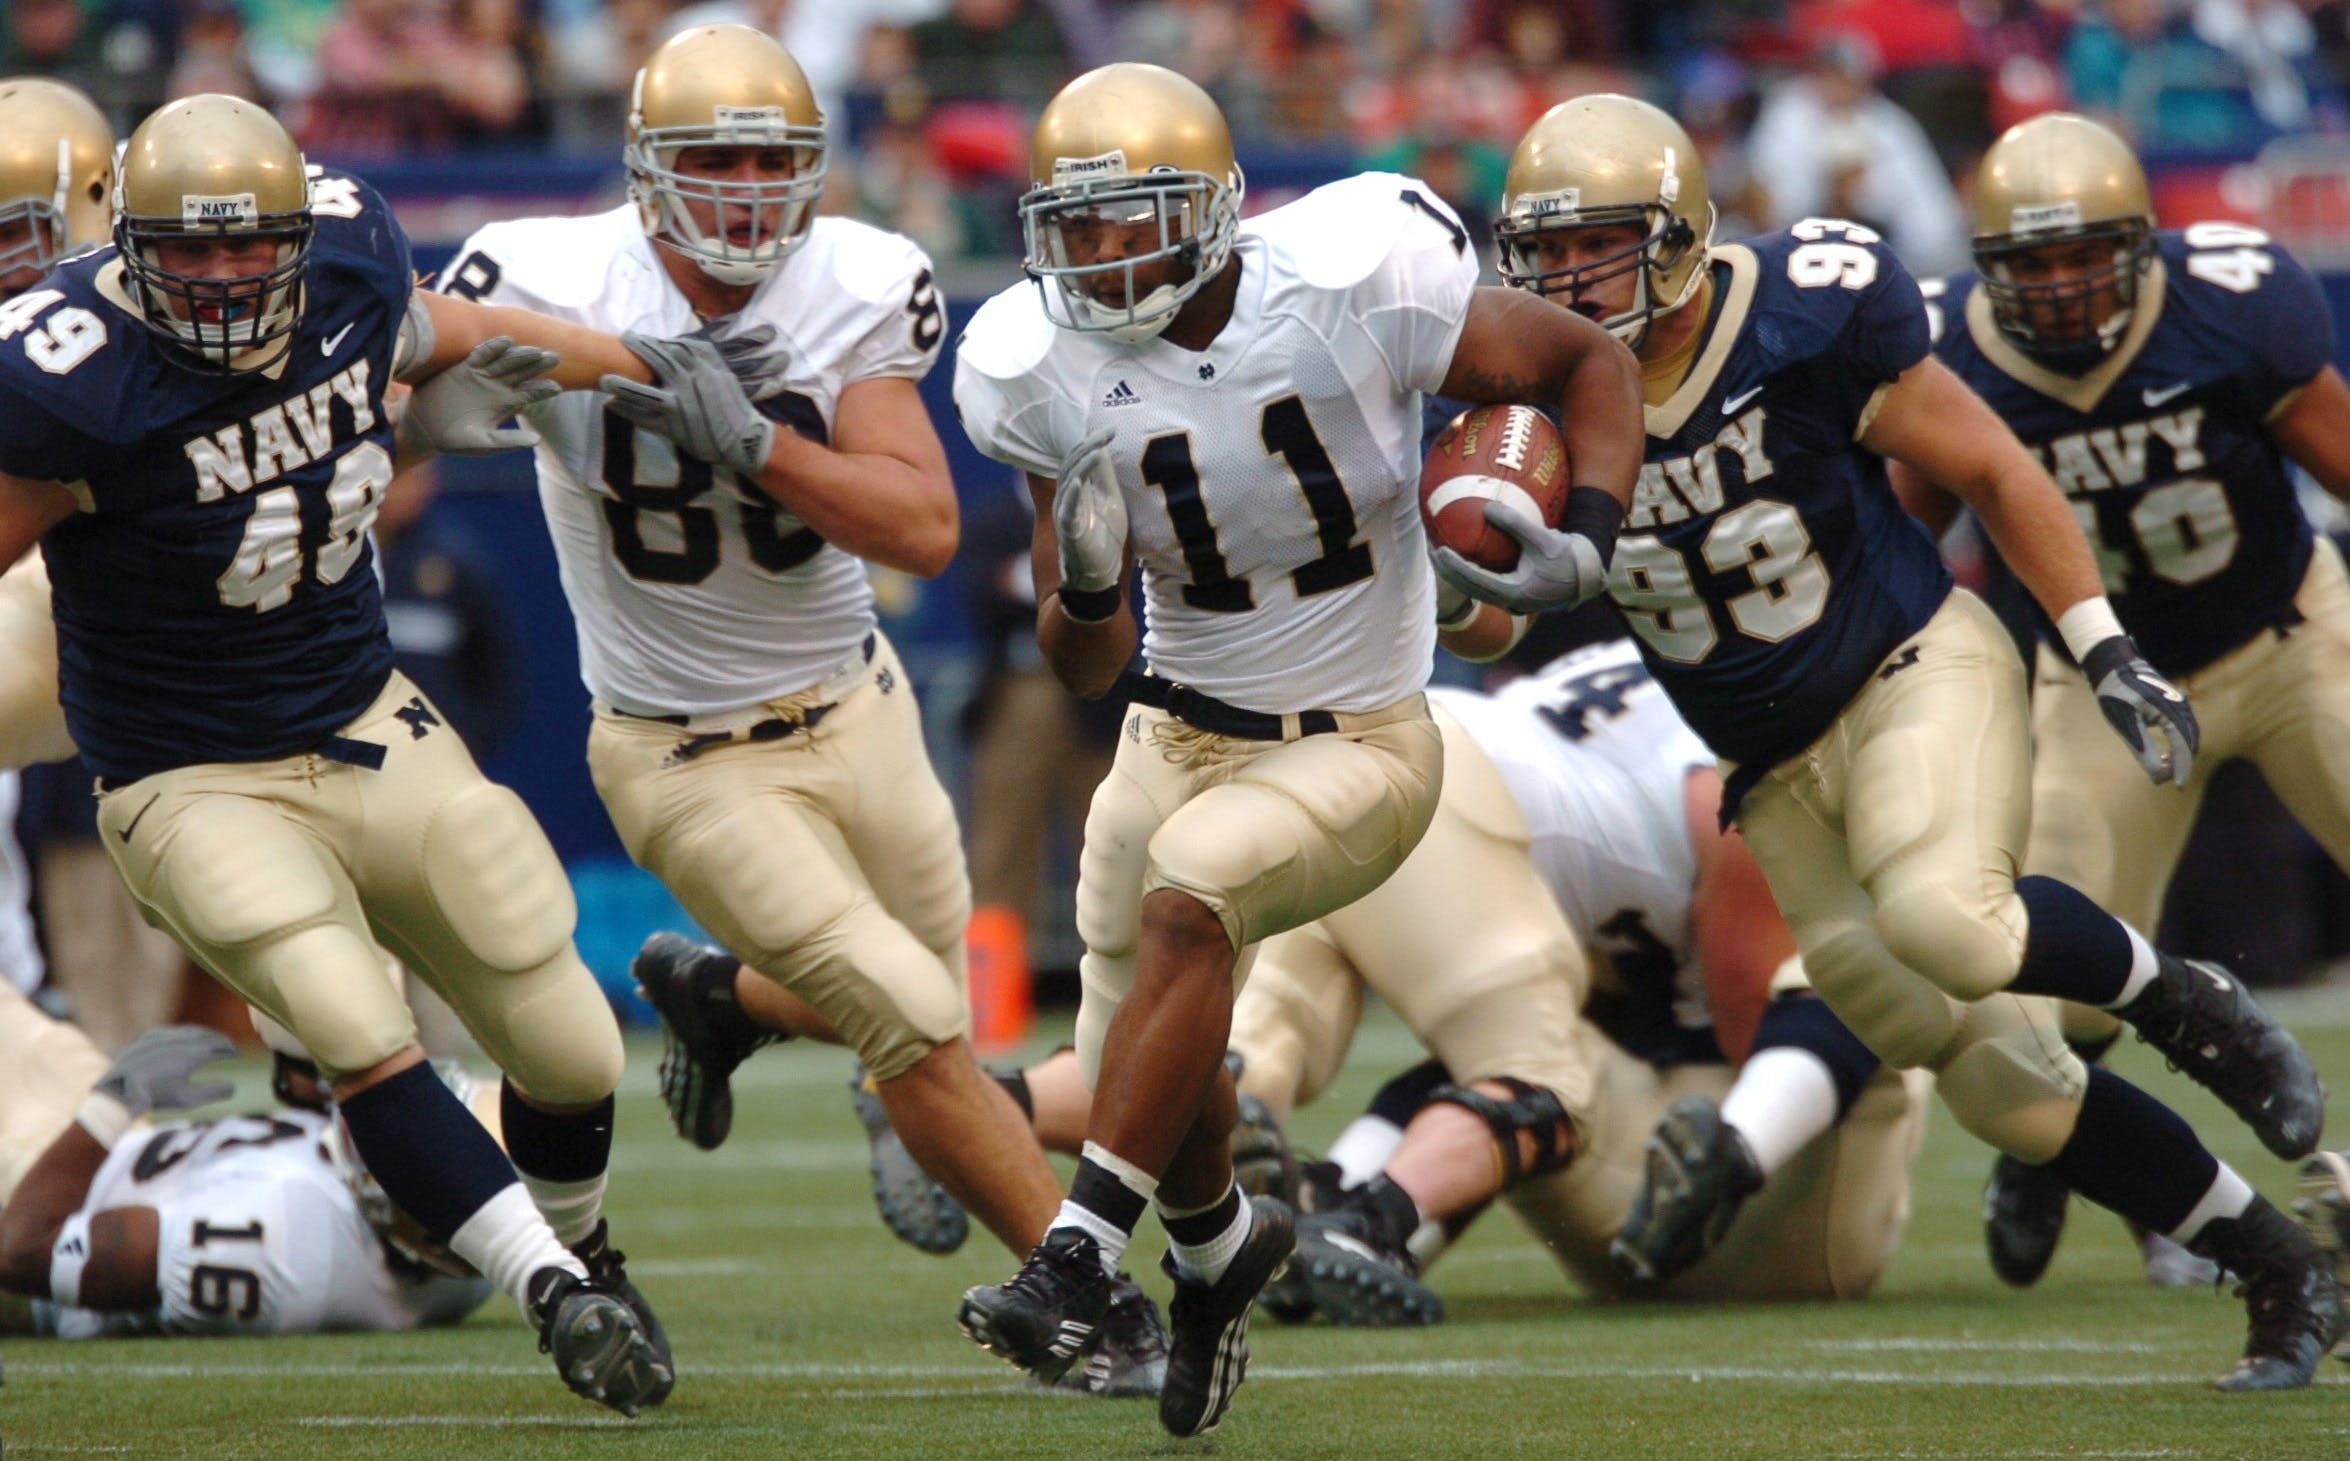 Group of Male Football Players Running on Field during Day